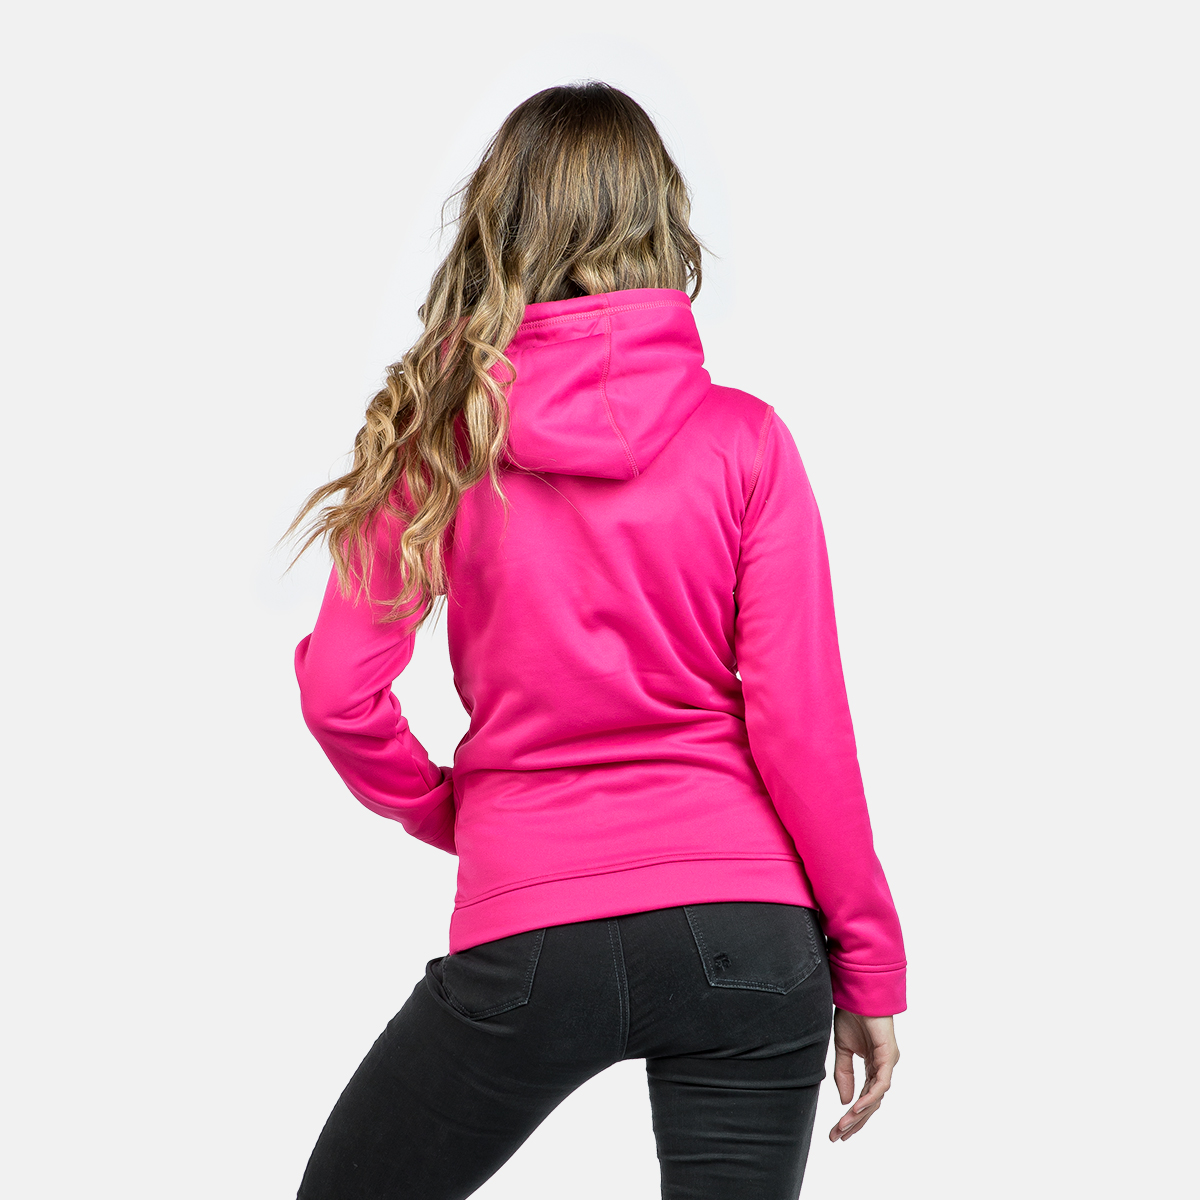 WOMAN'S CADI HOODED PULLOVER FUXIA